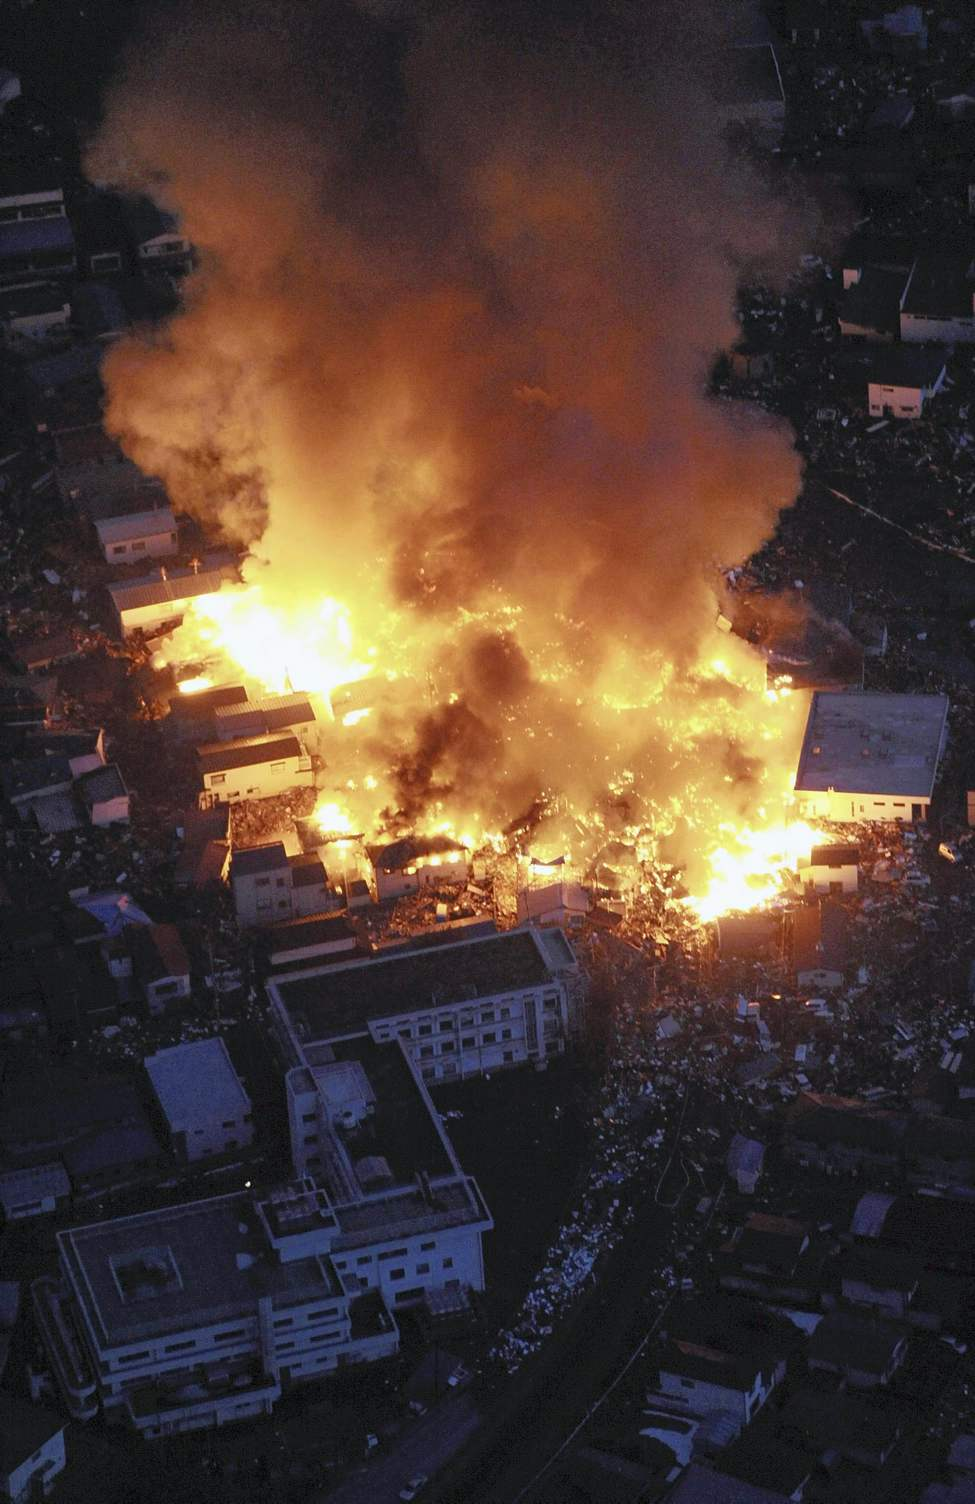 Flames rise from houses on fire after powerful earthquakes hit Yamada, Iwate Prefecture, northern Japan, Friday, March 11, 2011. (AP Photo/Osamu Kanazawa, The Yomiuri Shimbun)